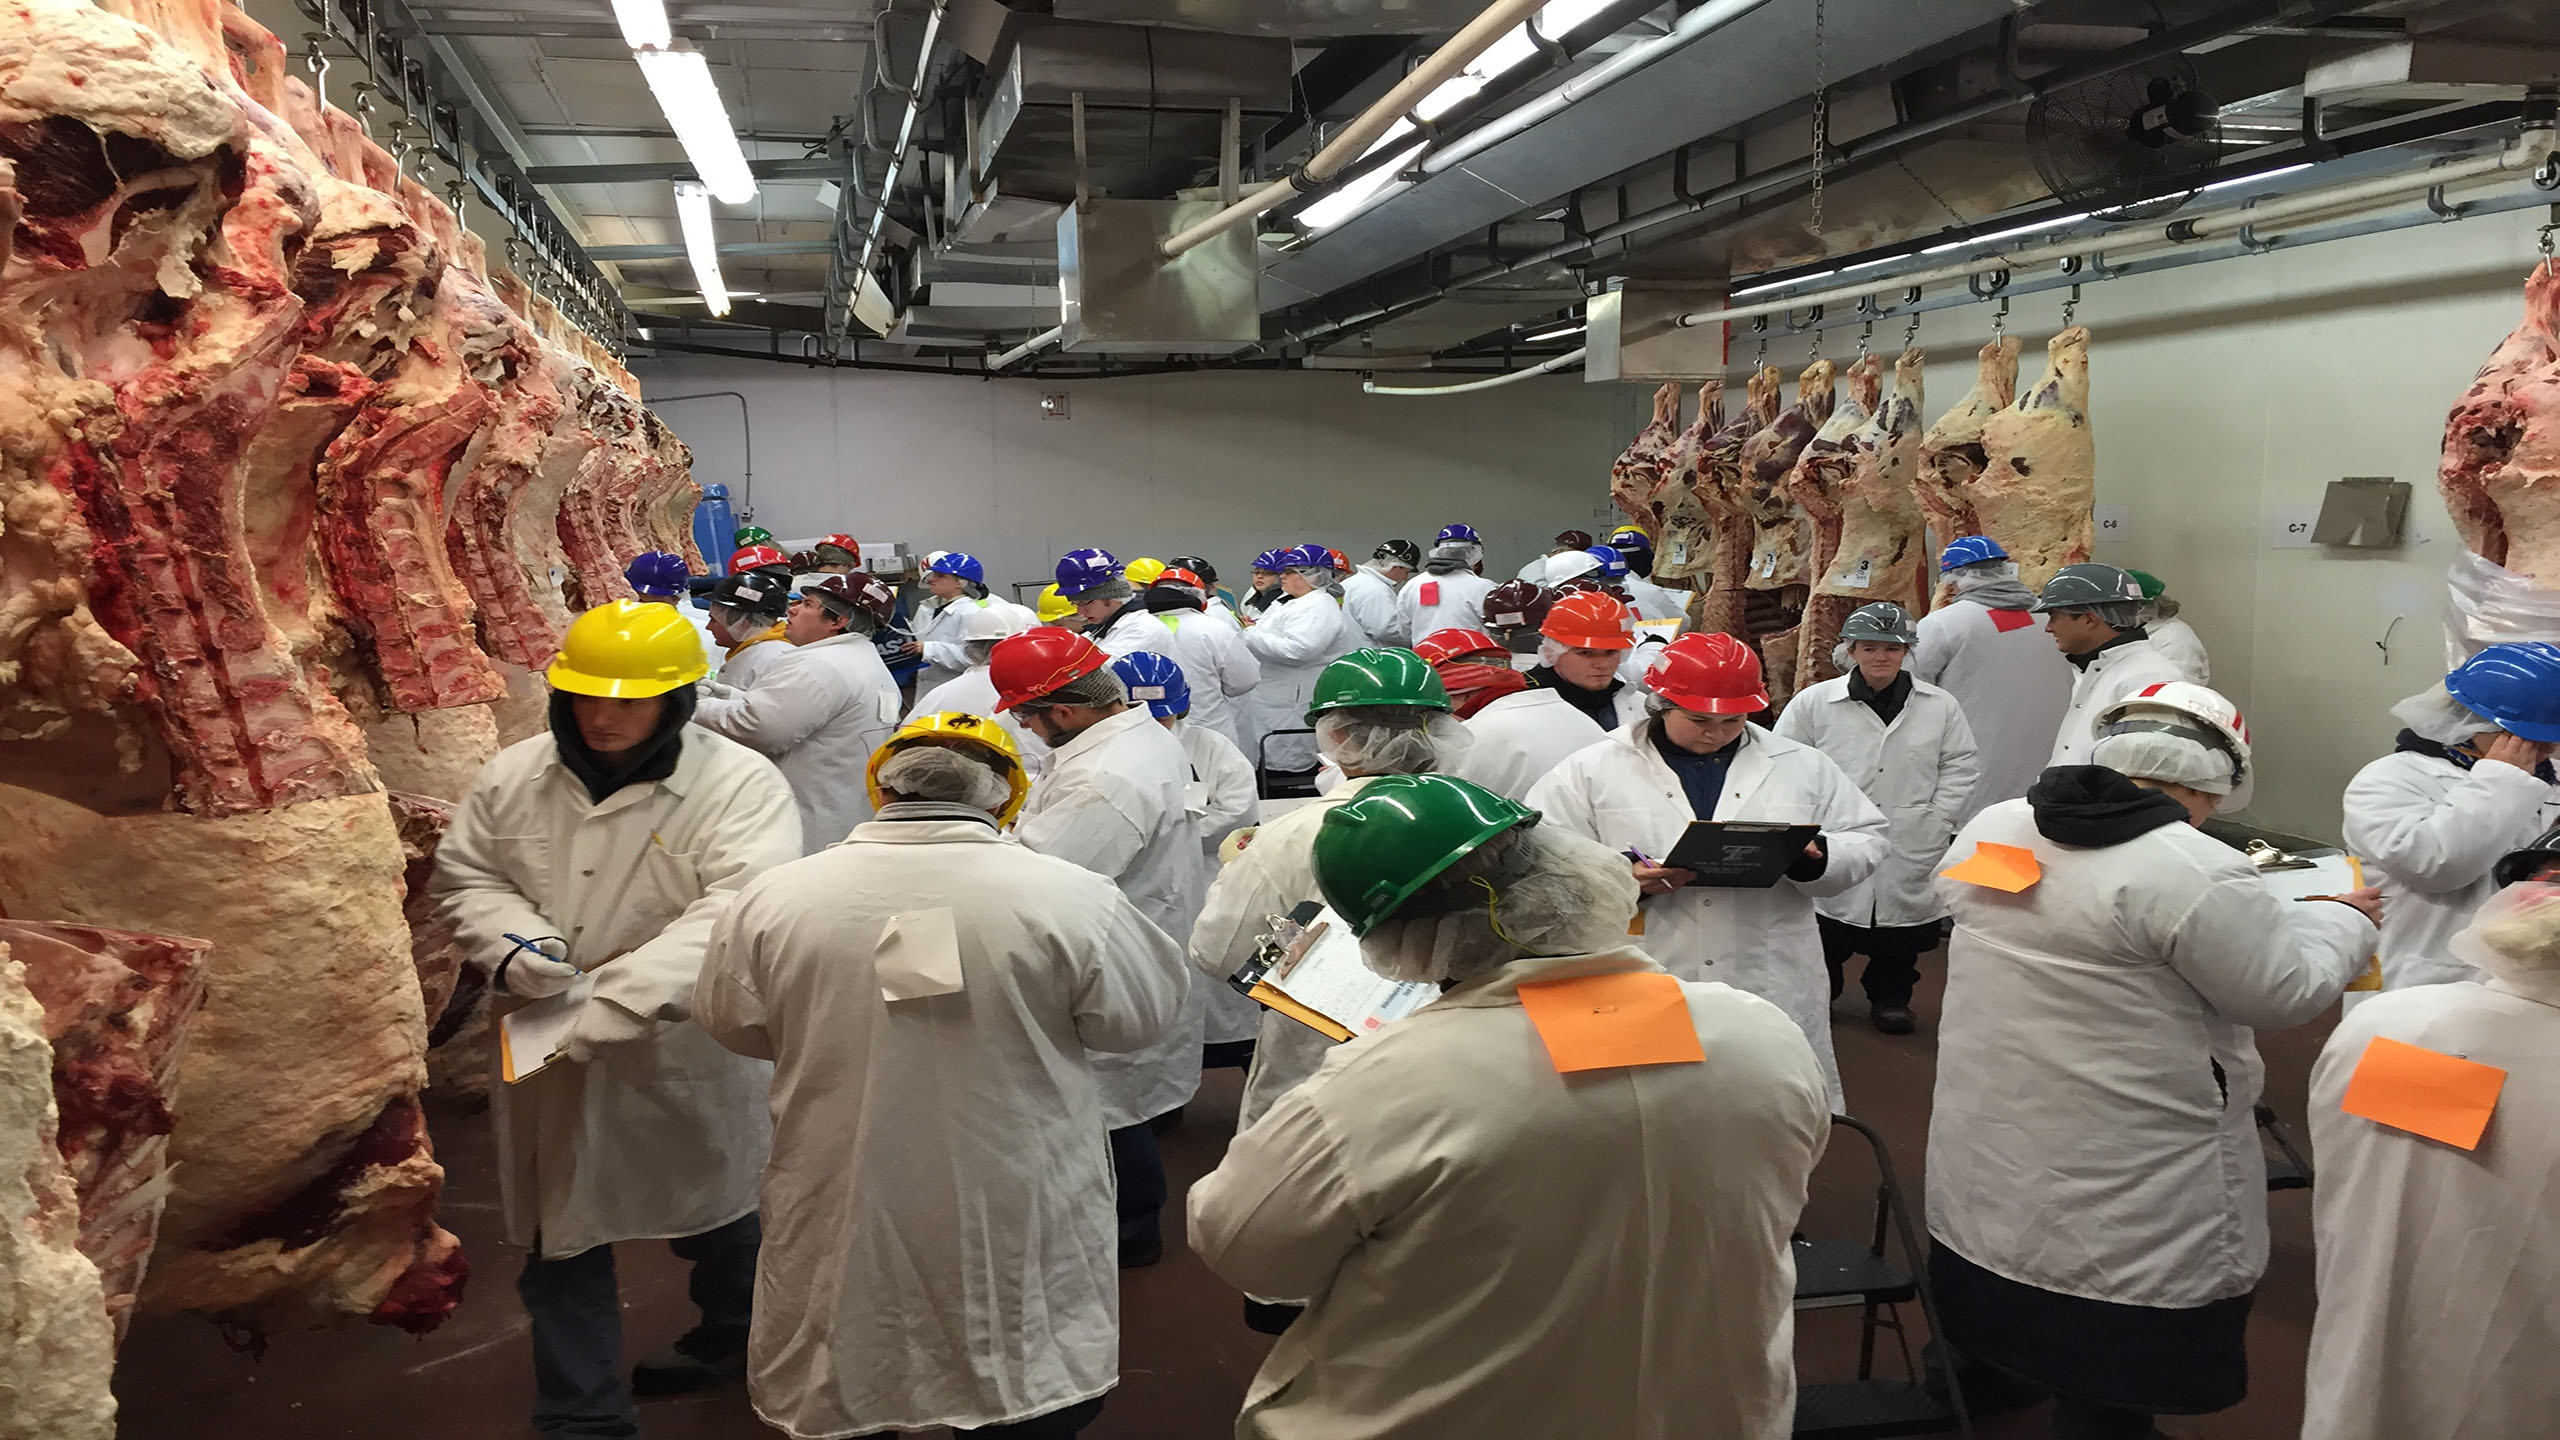 See the Results from the Southwestern Meat Judging Contest